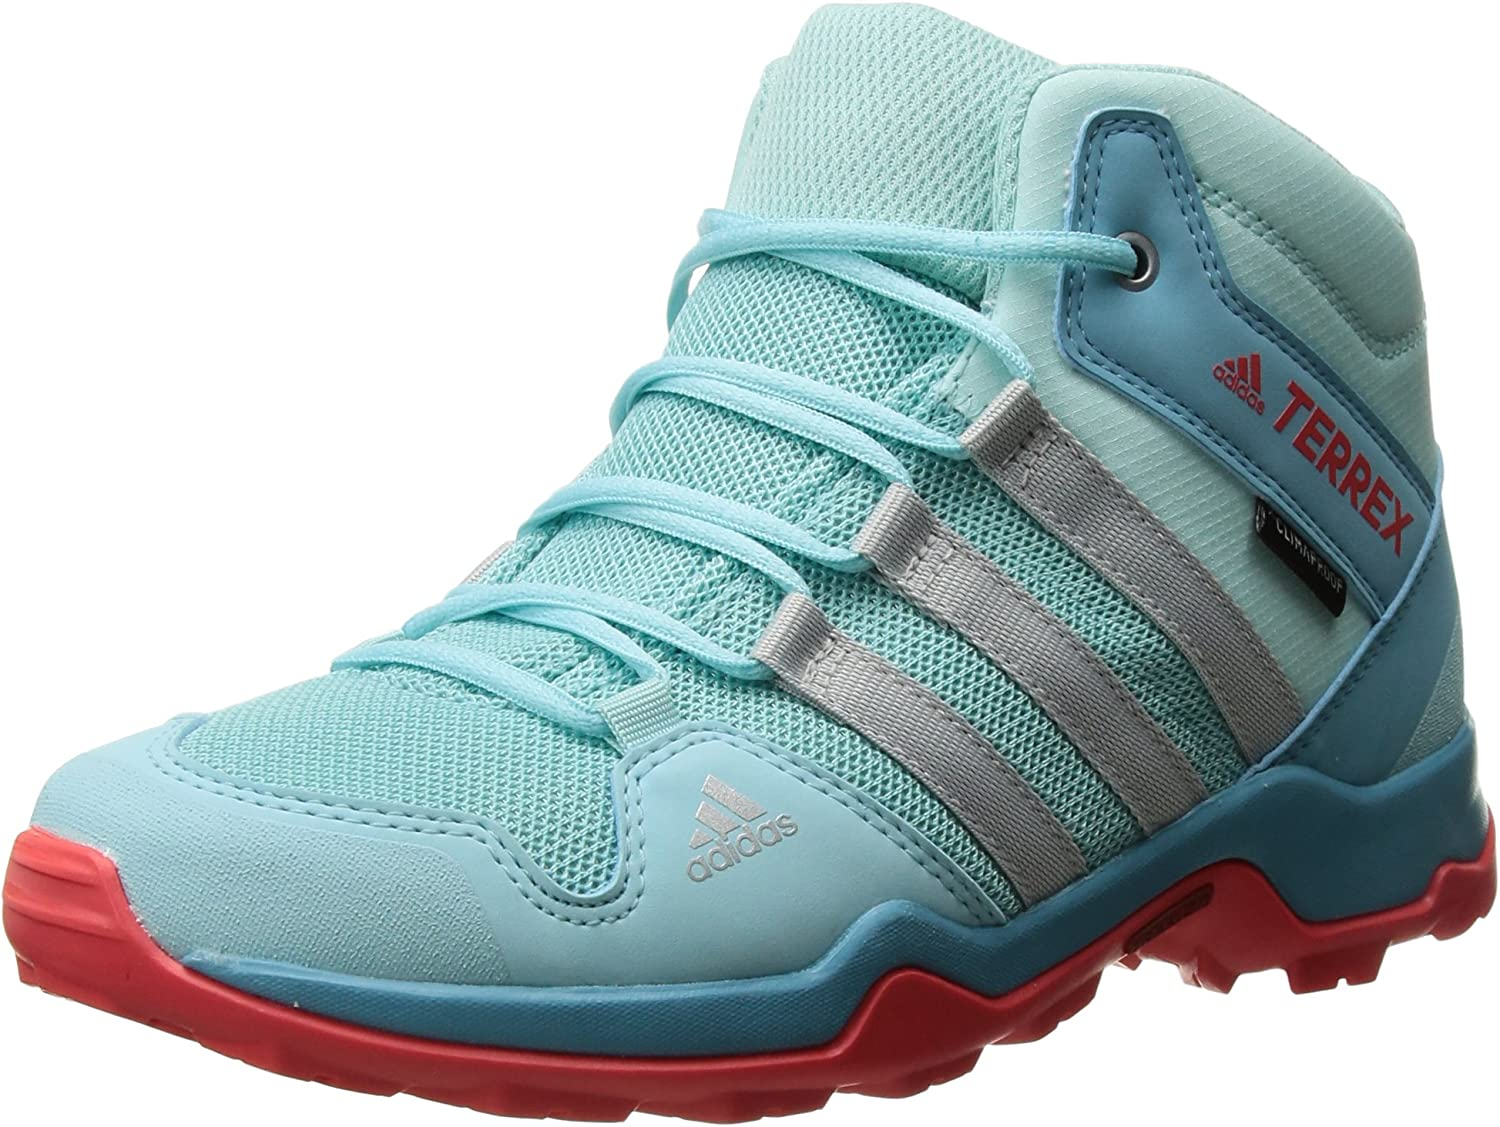 Adidas outdoor Kids' Terrex Ax2r Mid Cp K Hiking shoes